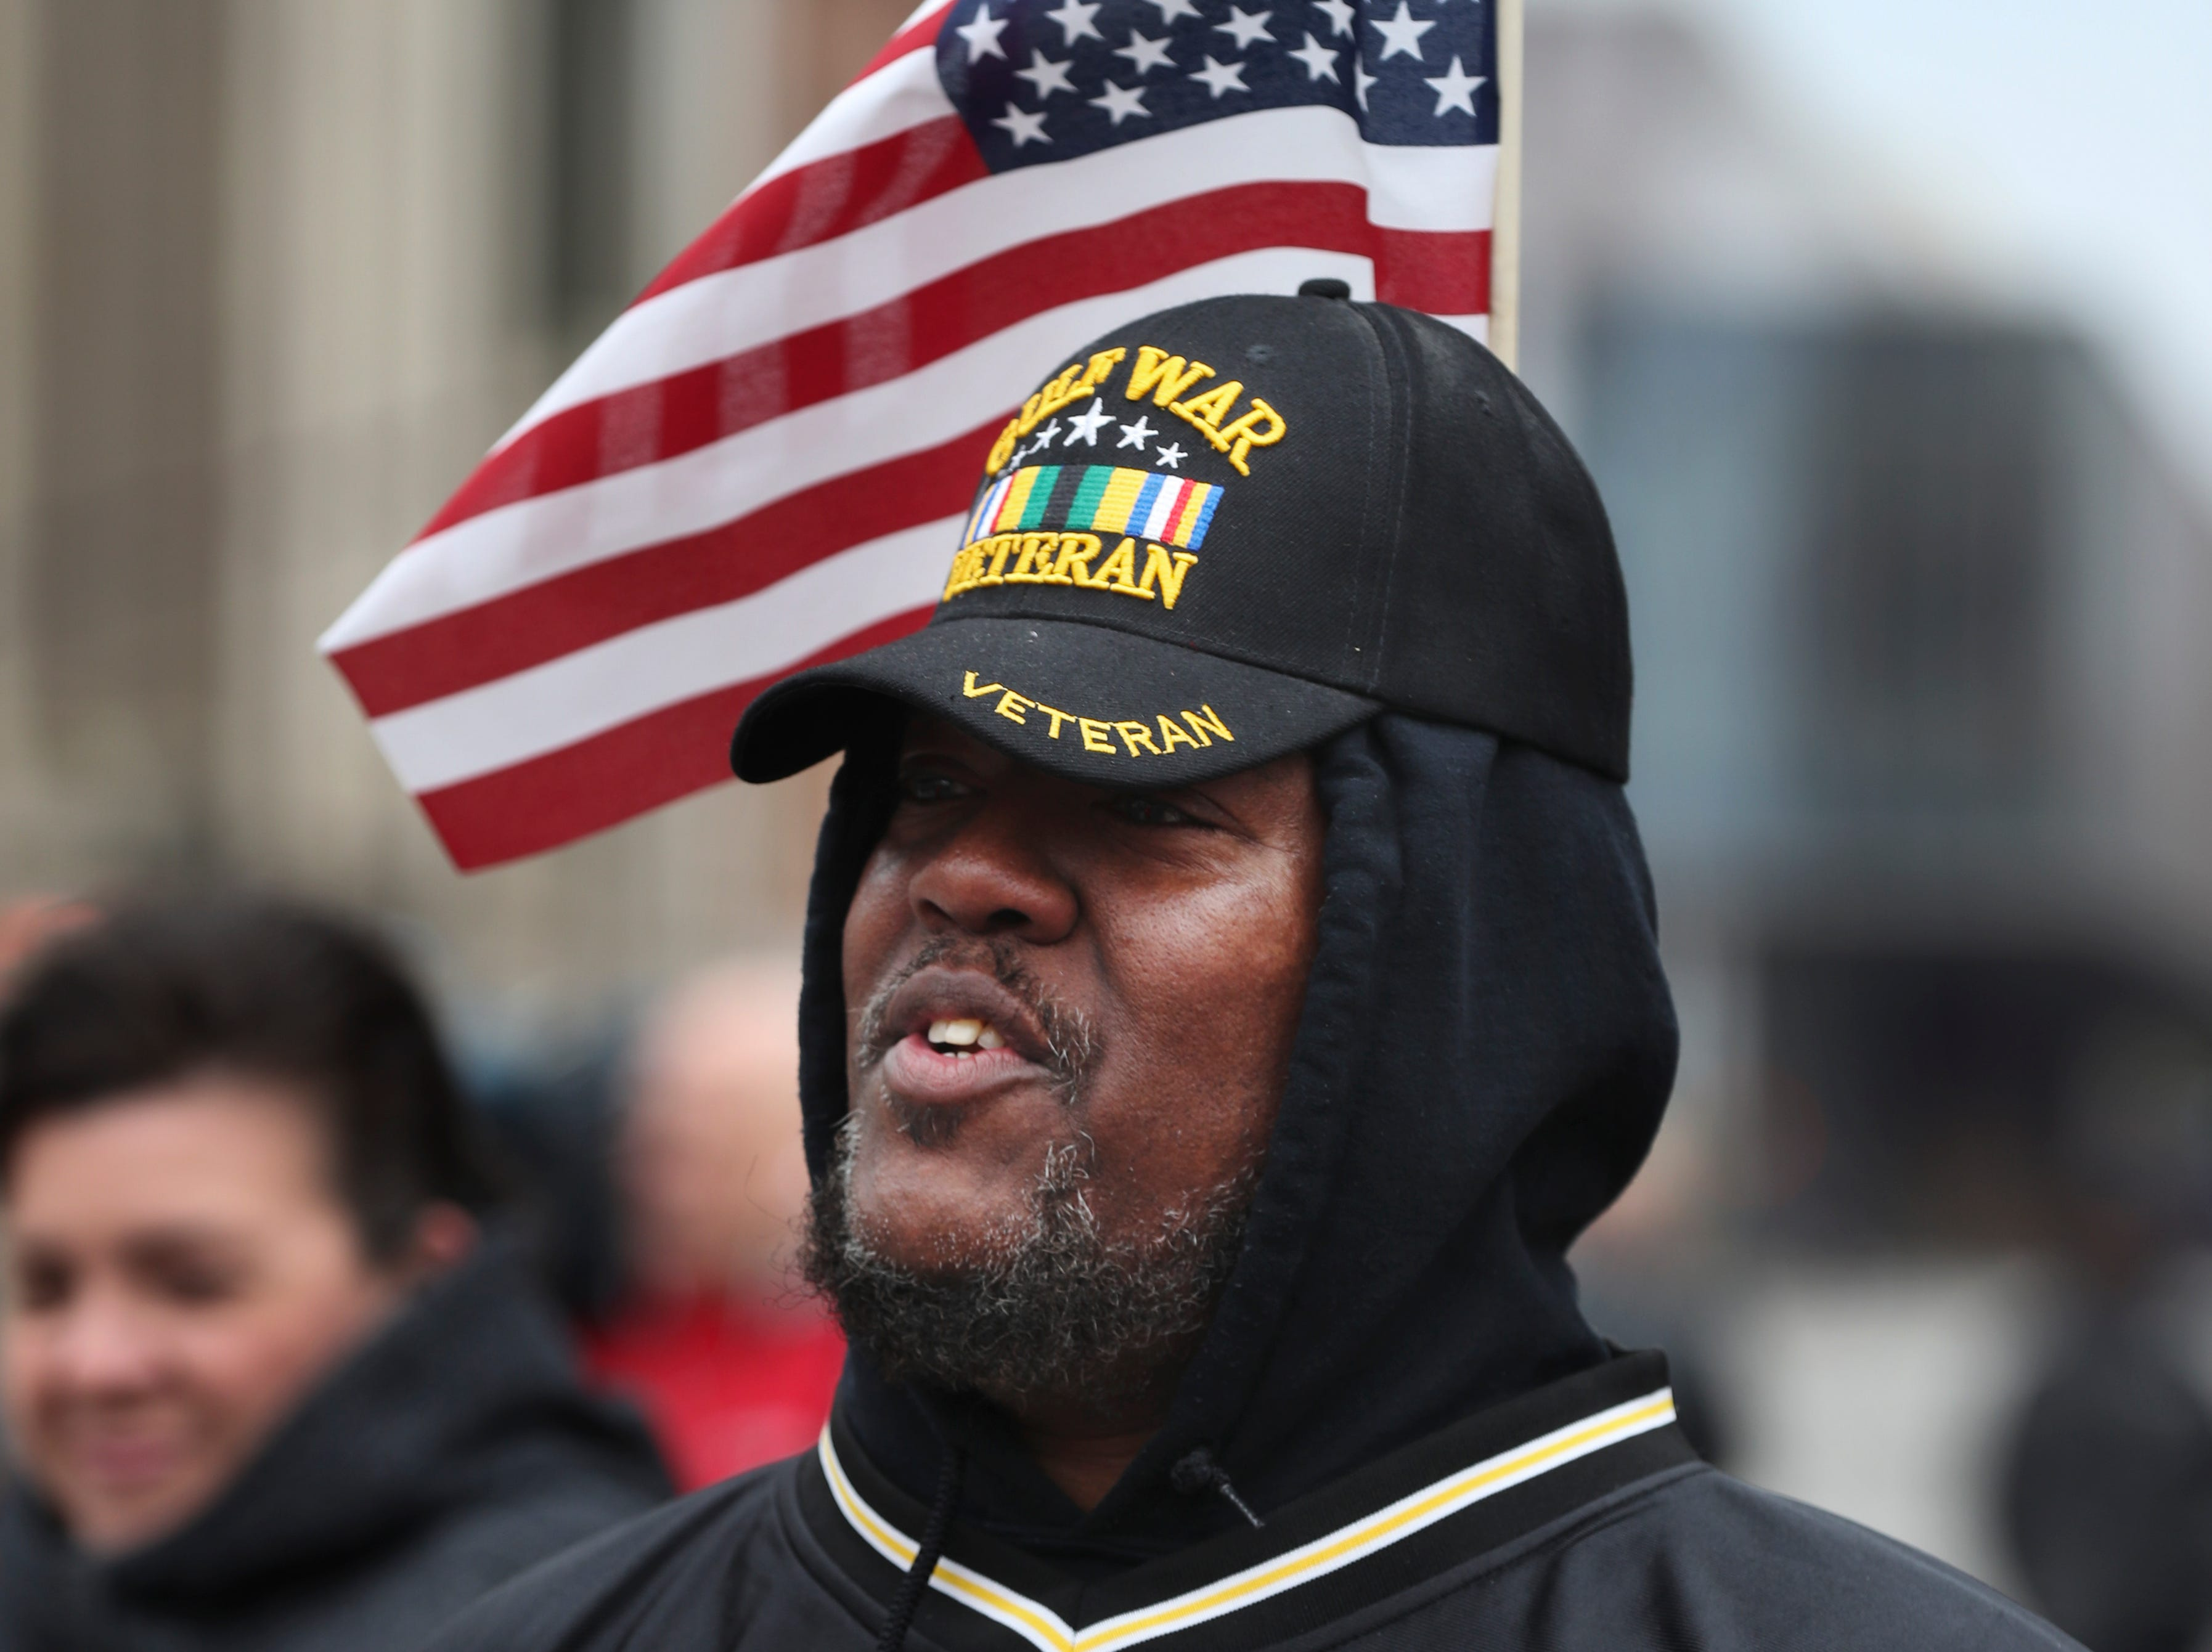 Sgt. Tim West, Ret. Army, watched the Veterans Day Parade march down Jefferson Street.Nov. 9, 2018